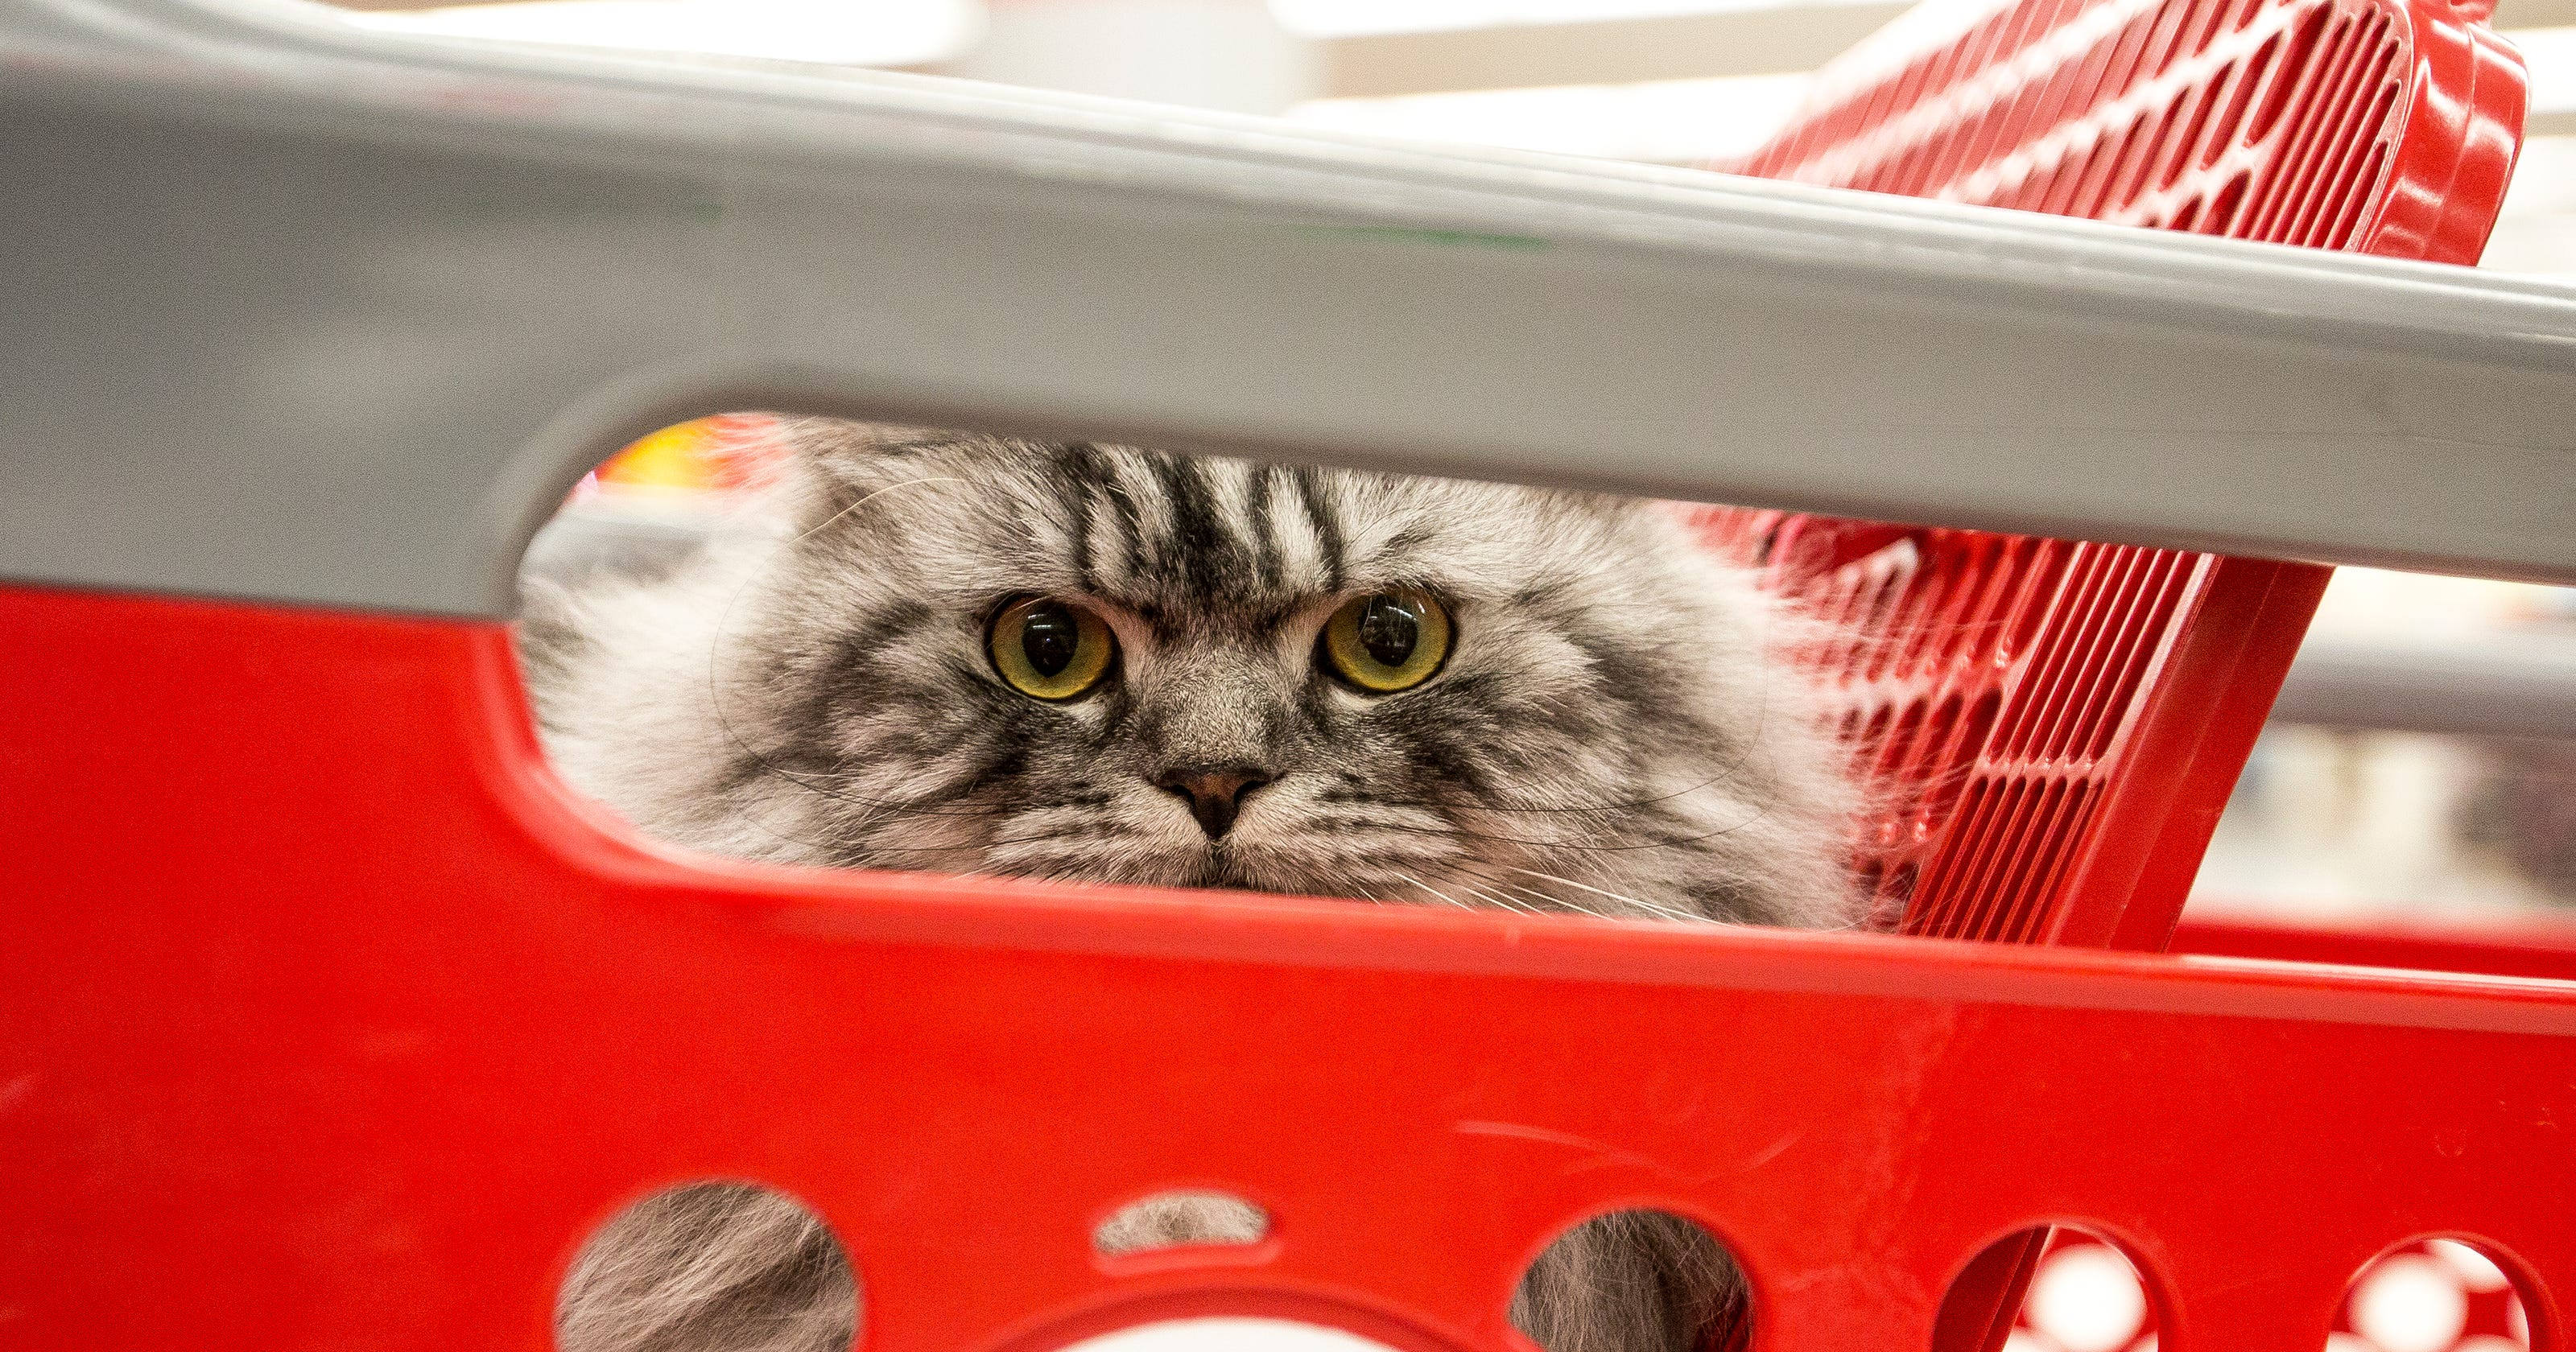 Spencer cat featured in Target ad